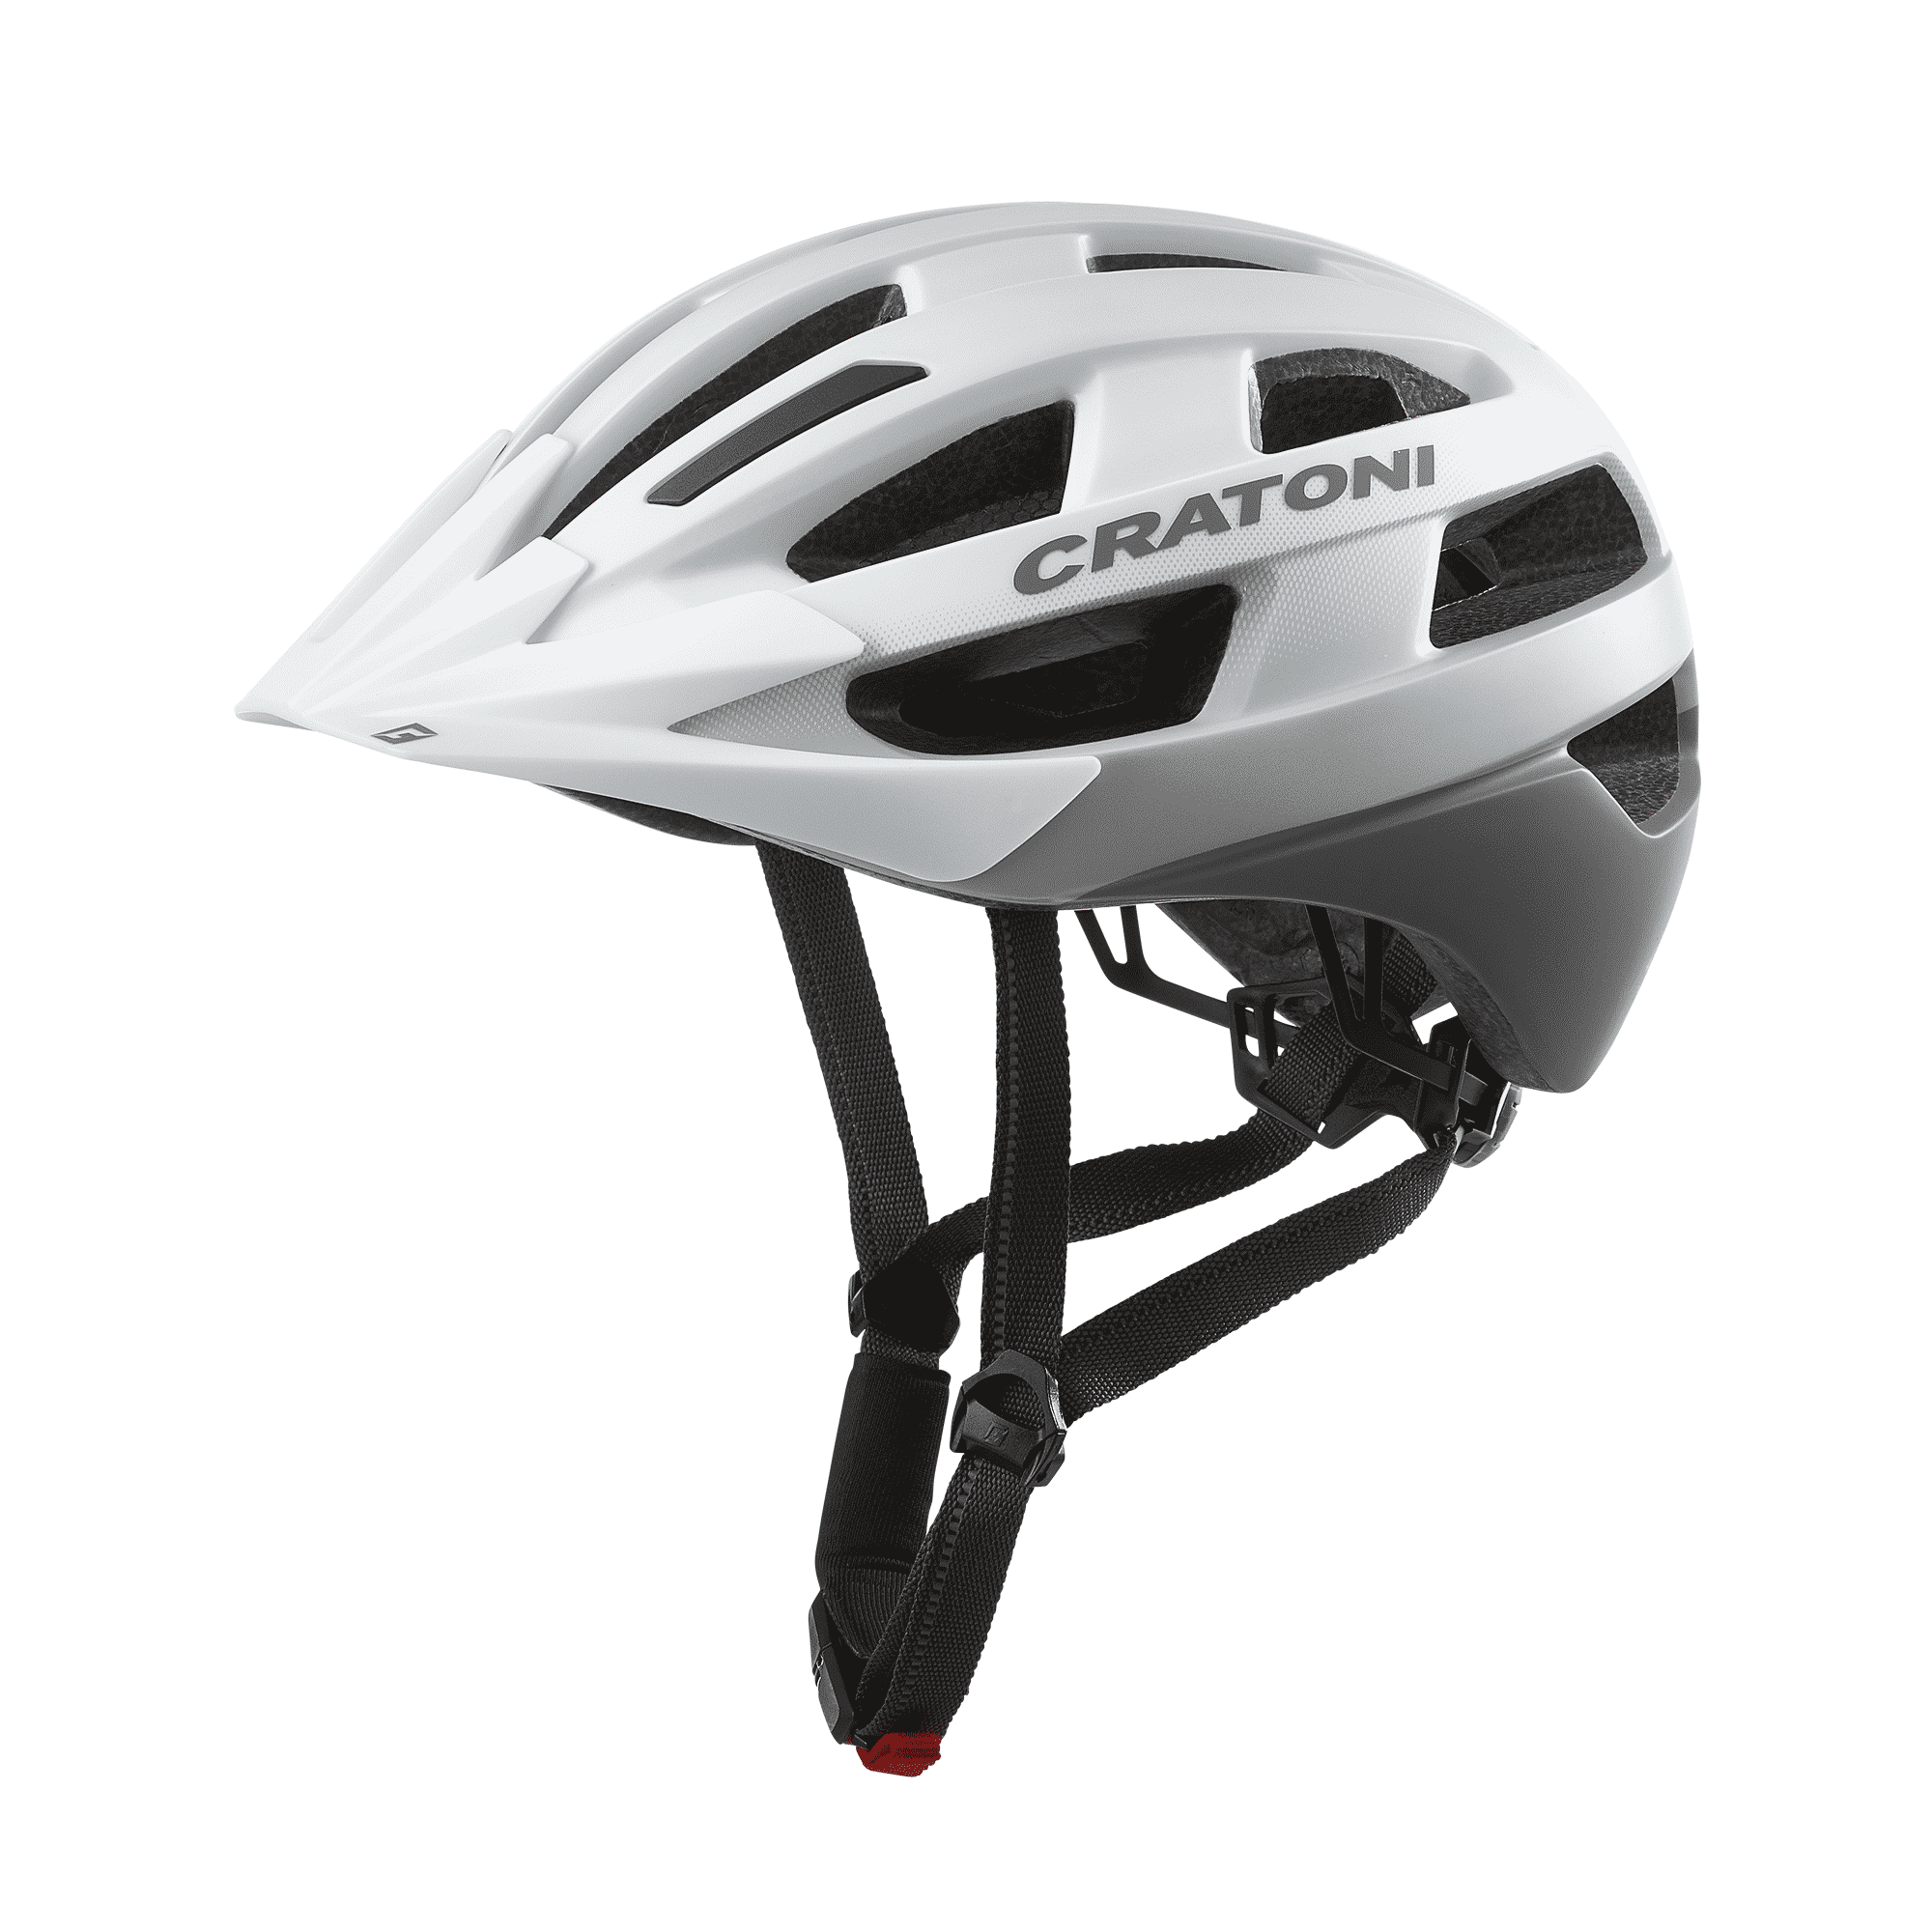 Cratoni Velo-X white matt